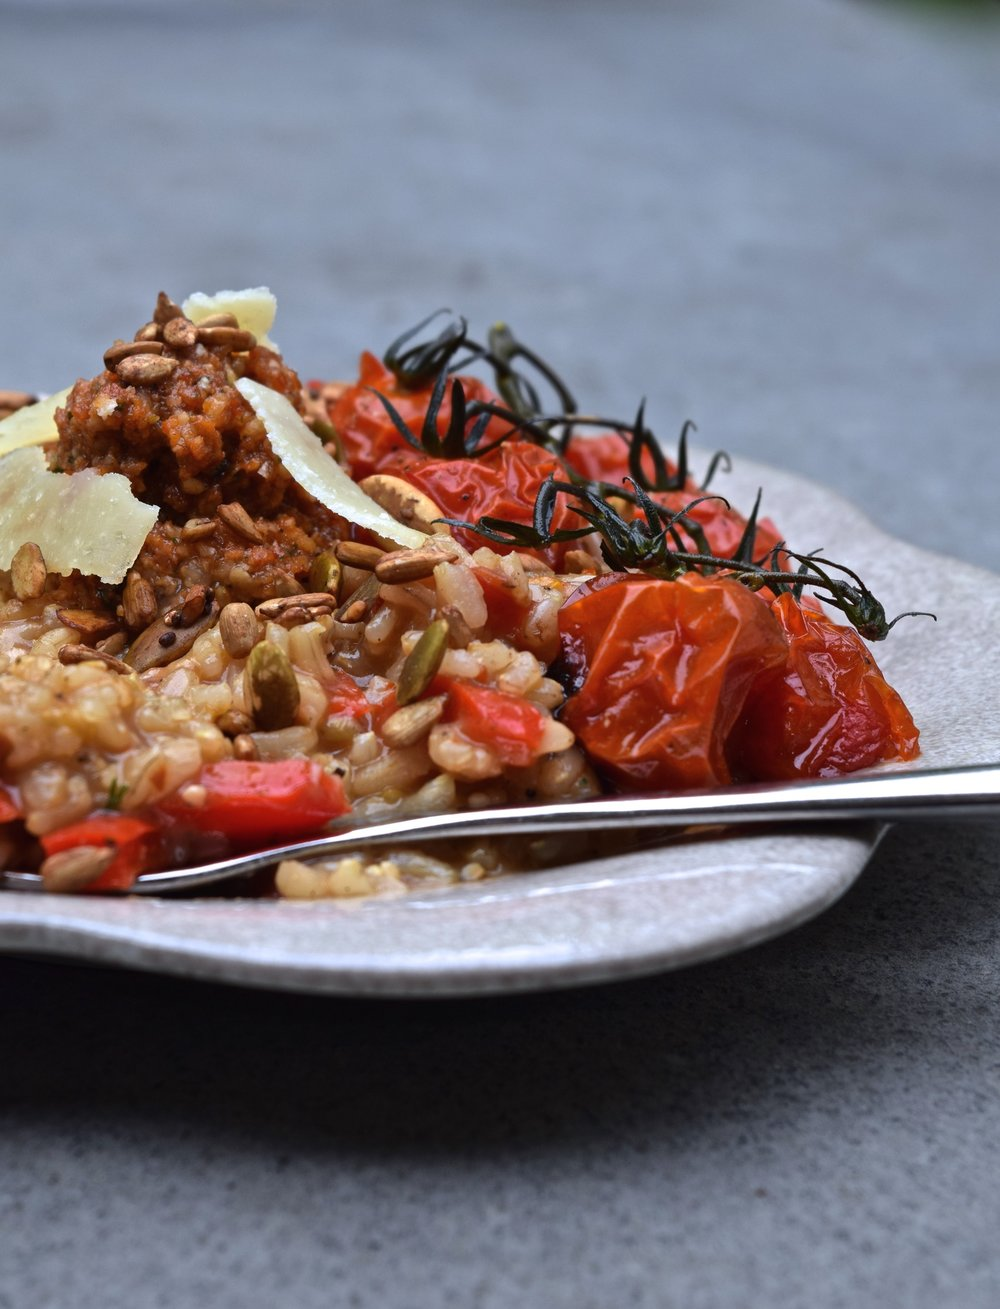 Brown+Rice+Risotto+with+Sundried+Tomato+Pesto+|+The+Herb+Diaries.jpg